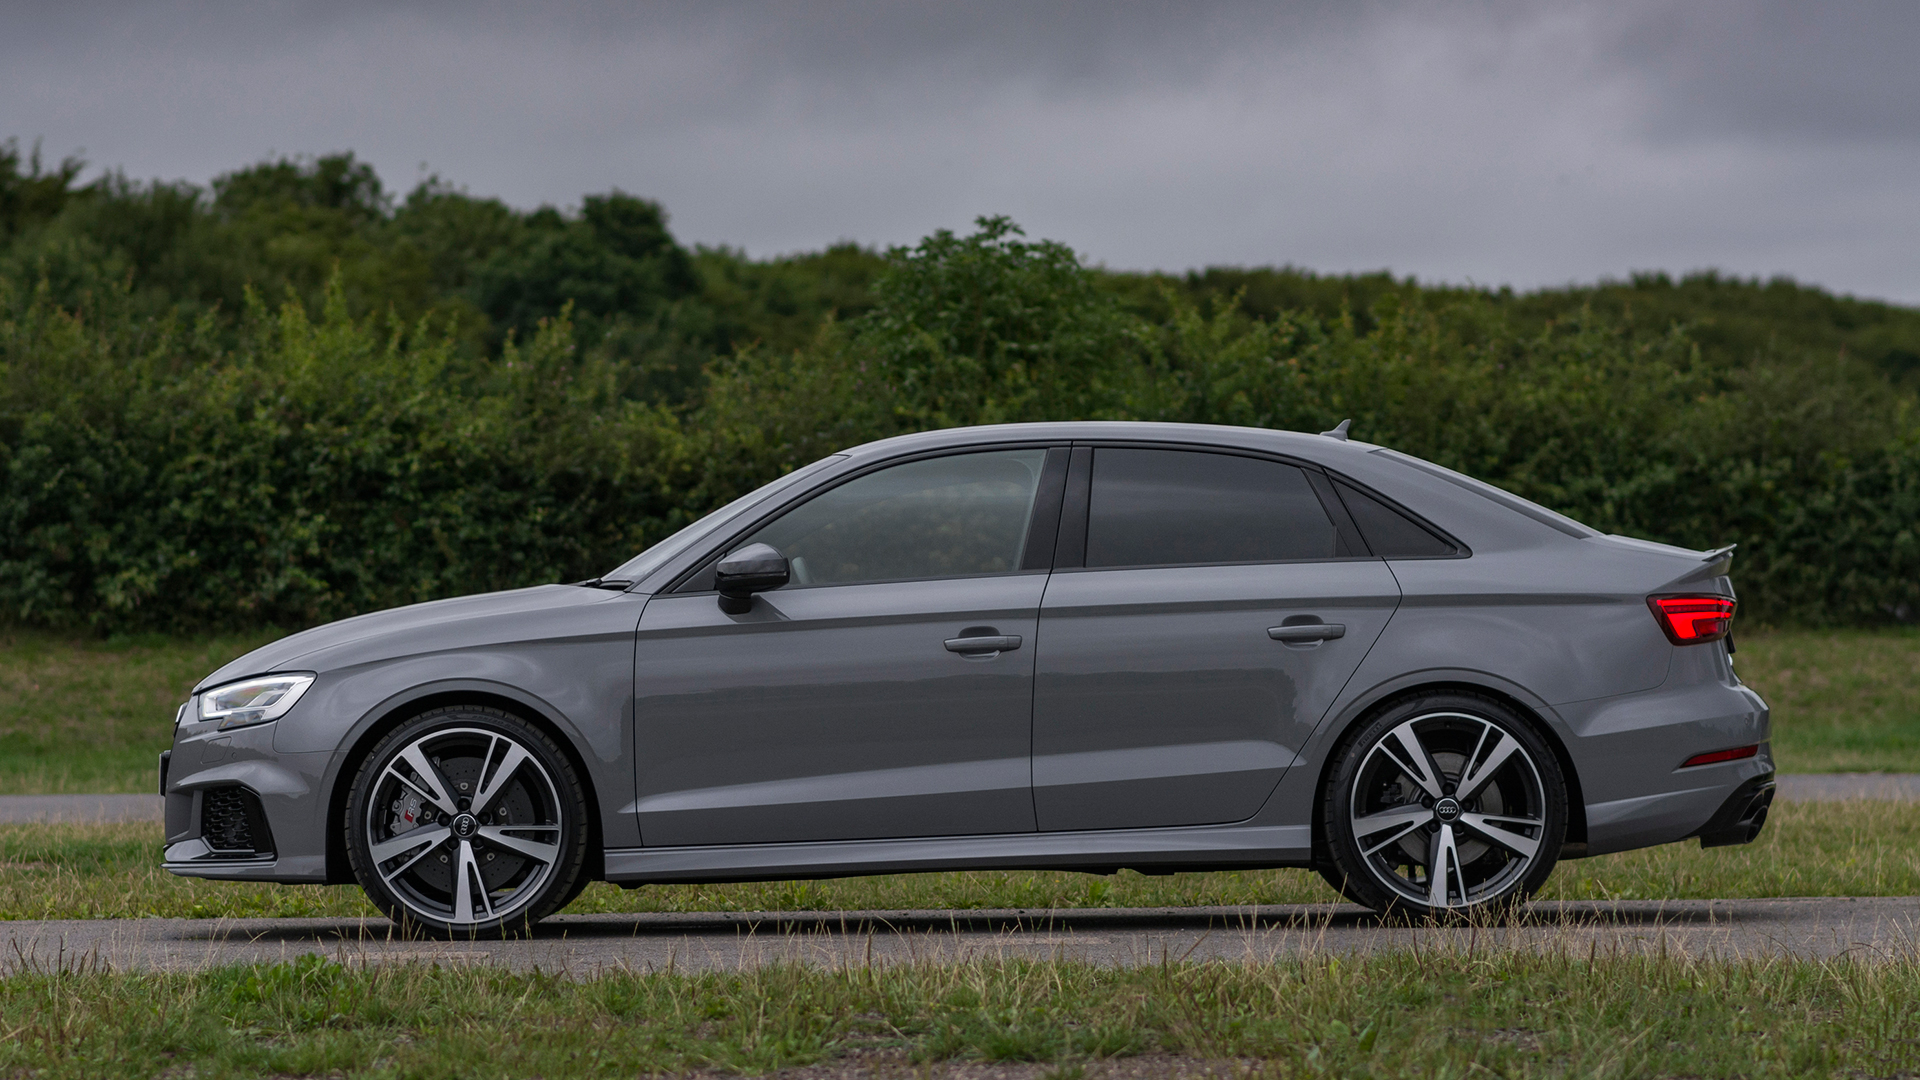 Audi Rs3 Used Cars For Sale In Portsmouth Autotrader Uk